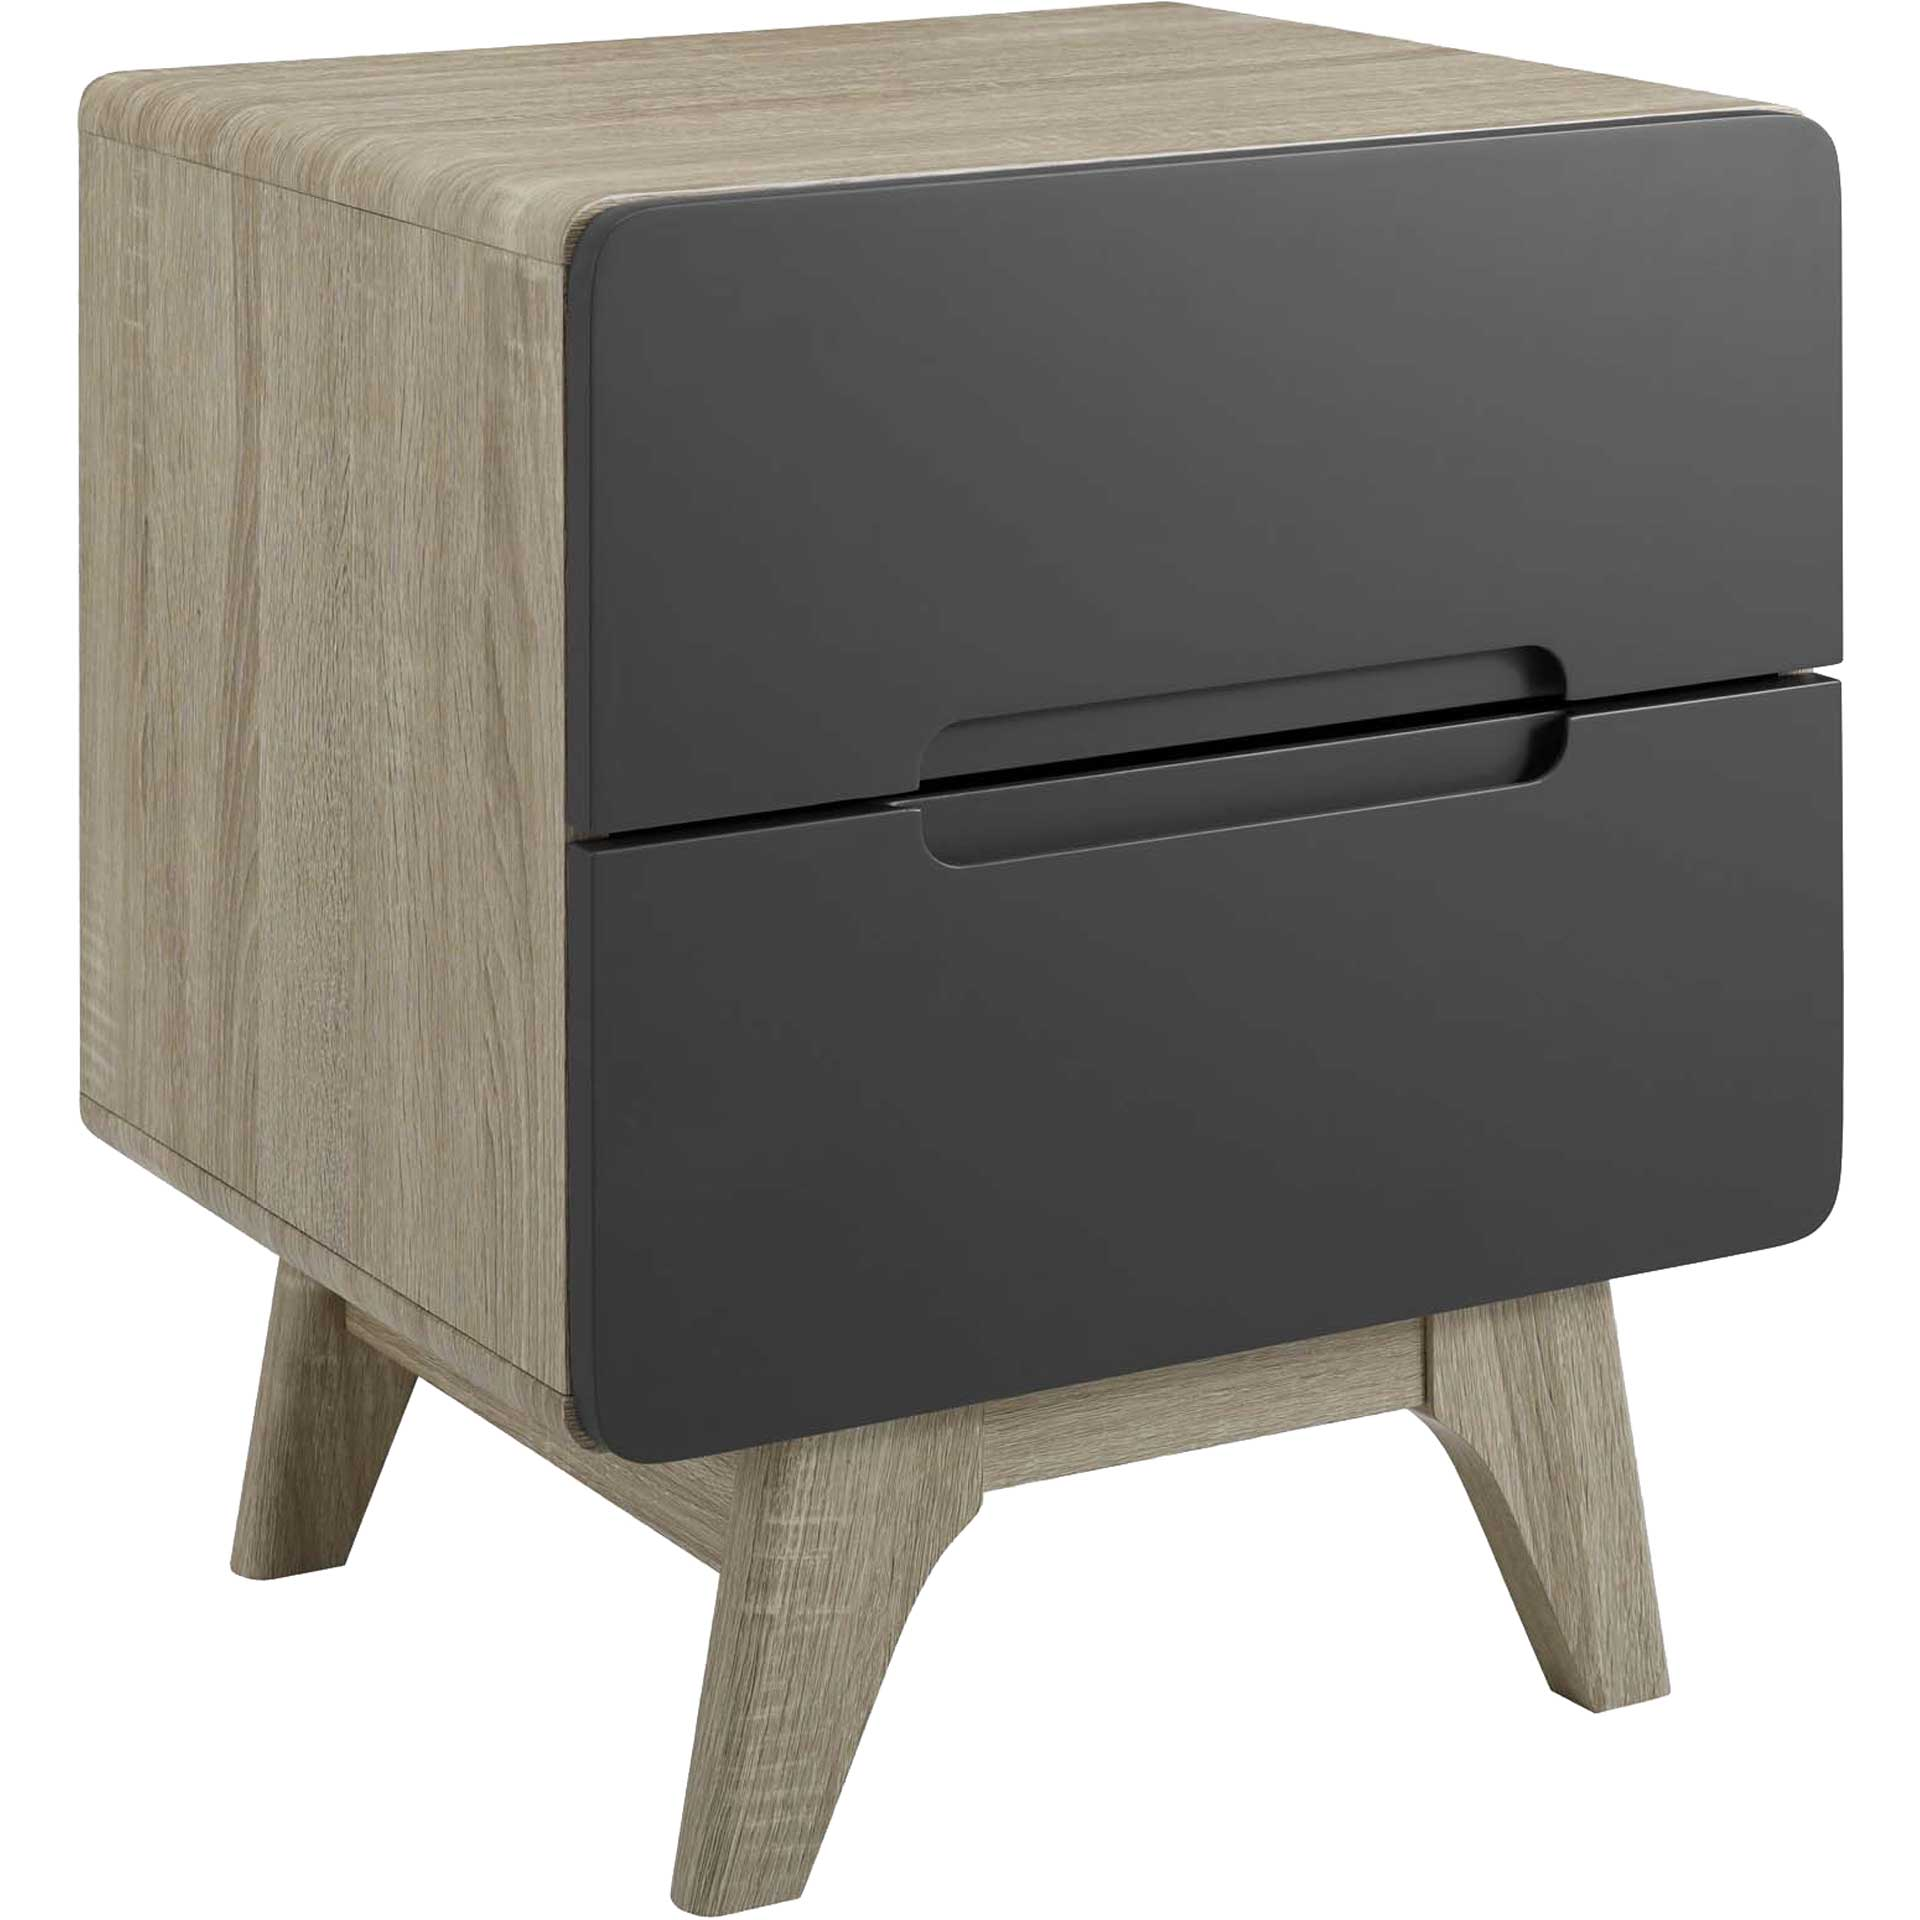 Orion Wood Nightstand Natural Gray